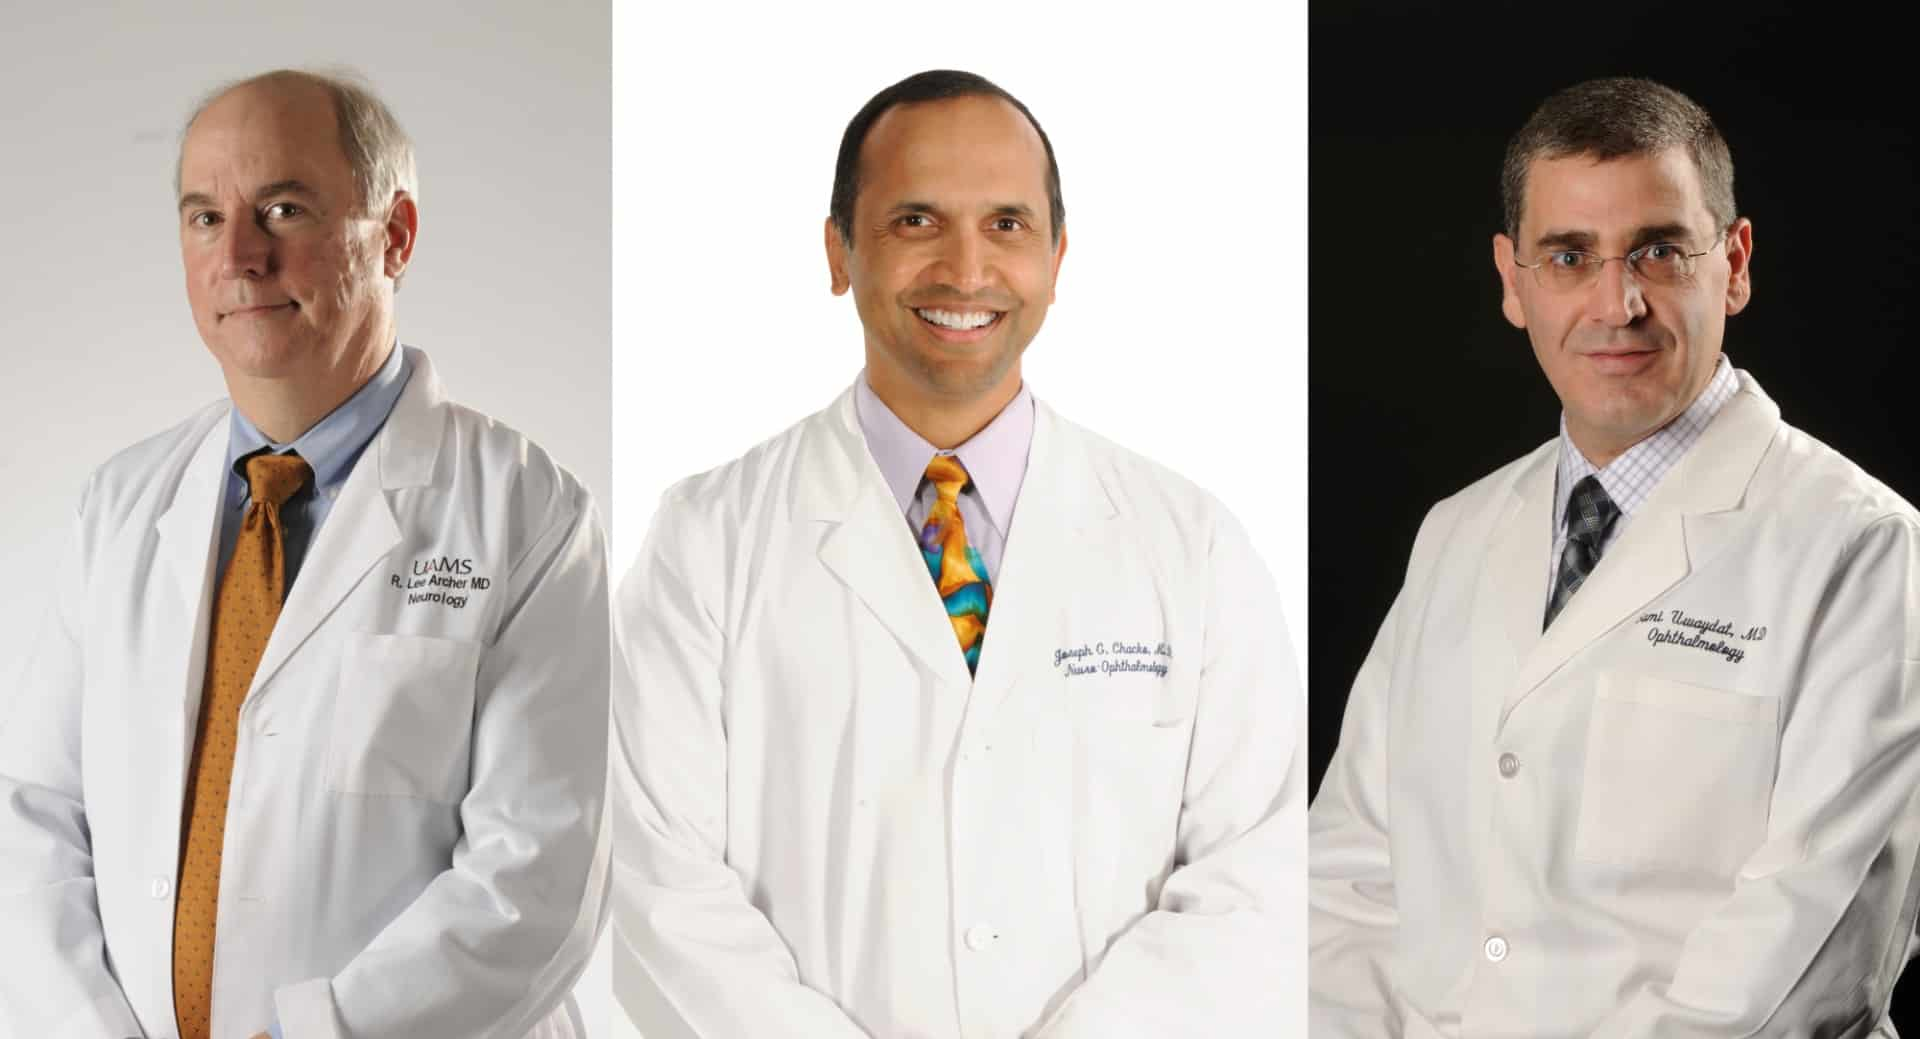 """This scholarship is also special in honoring three truly world-class faculty physicians,"" he added. ""I am not at all surprised that the donors were inspired by Dr. Archer, Dr. Chacko and Dr. Uwaydat."""